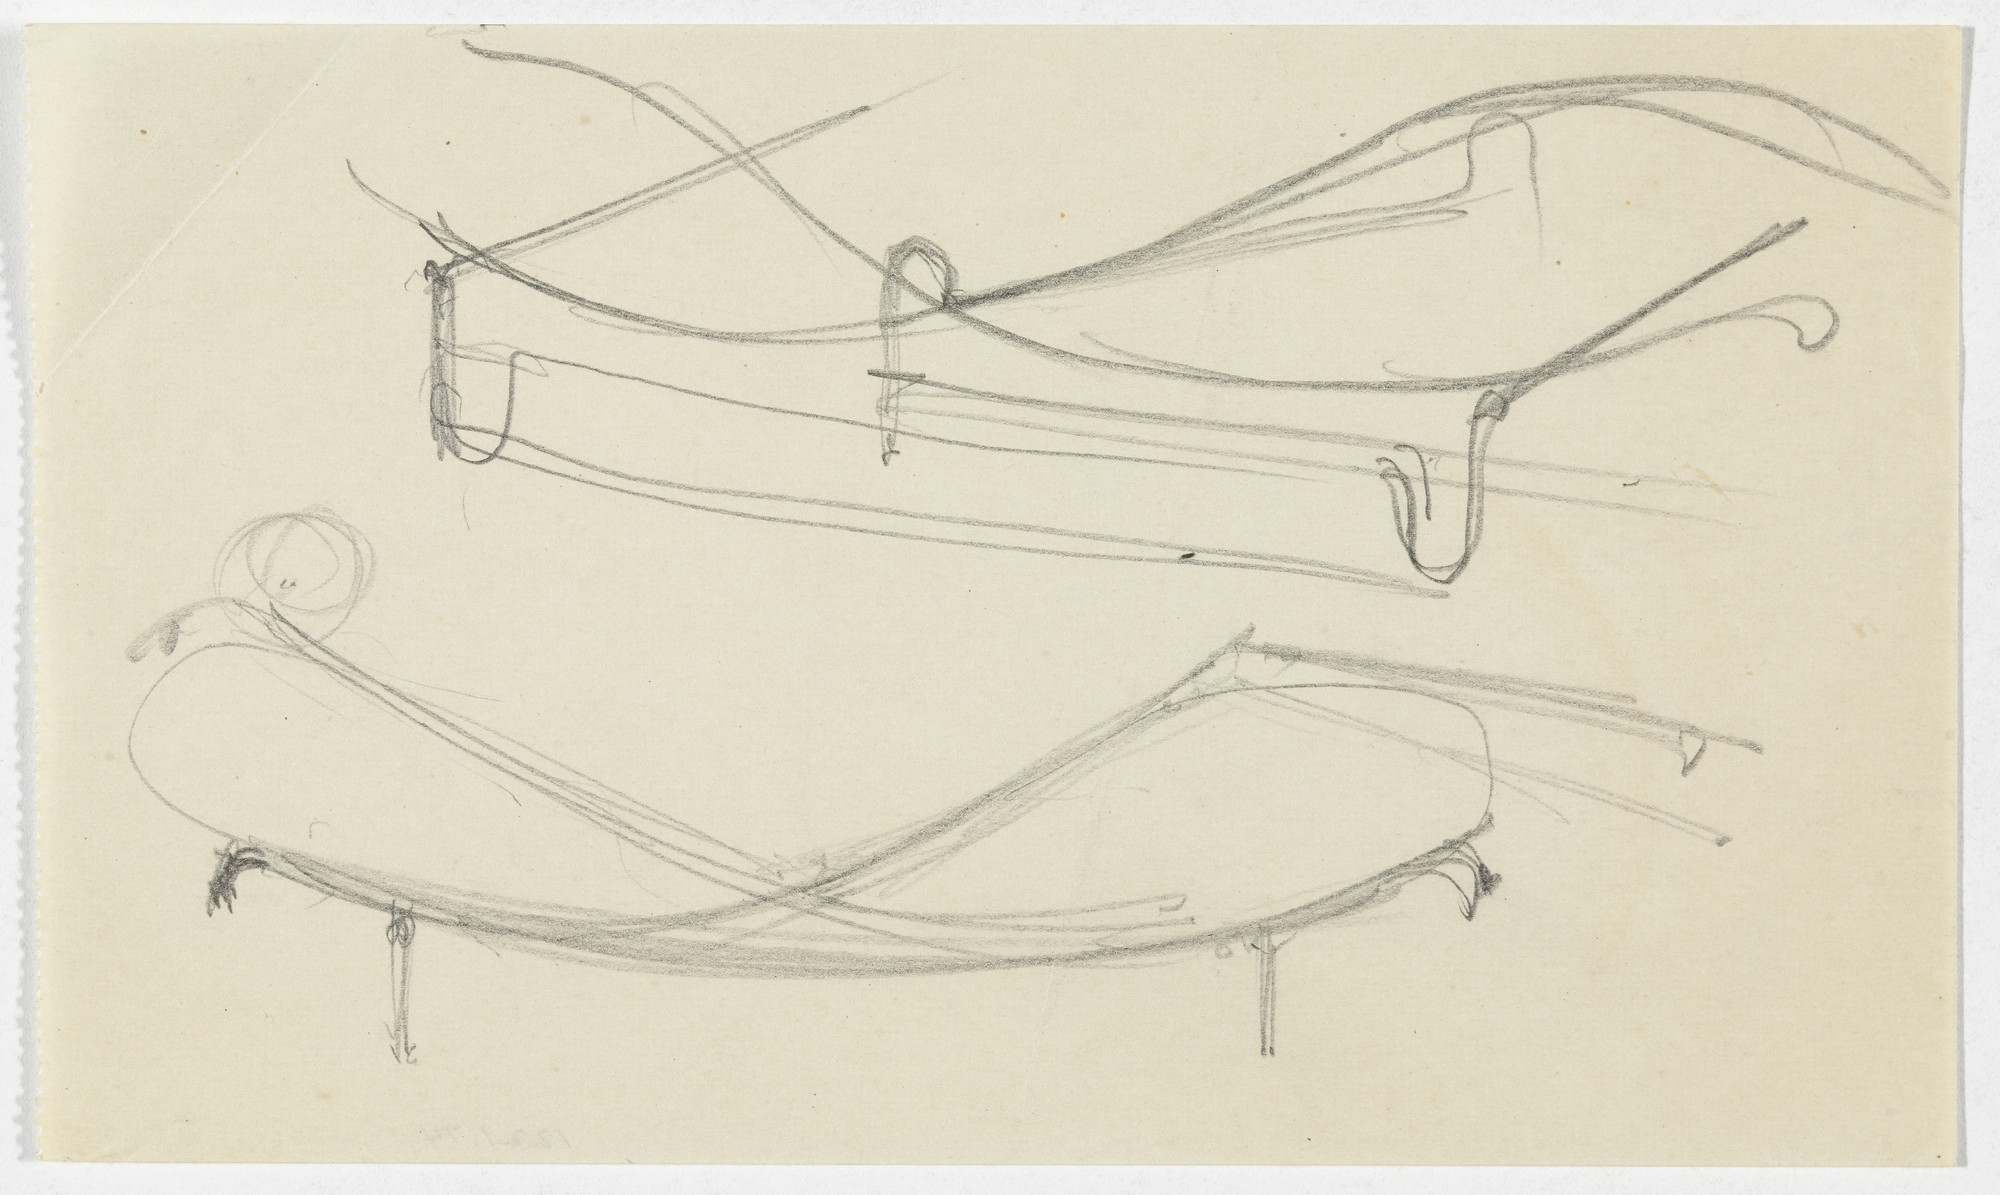 Ludwig Mies van der Rohe. Reclining Chair without Arms (Perspective sketches). 1934